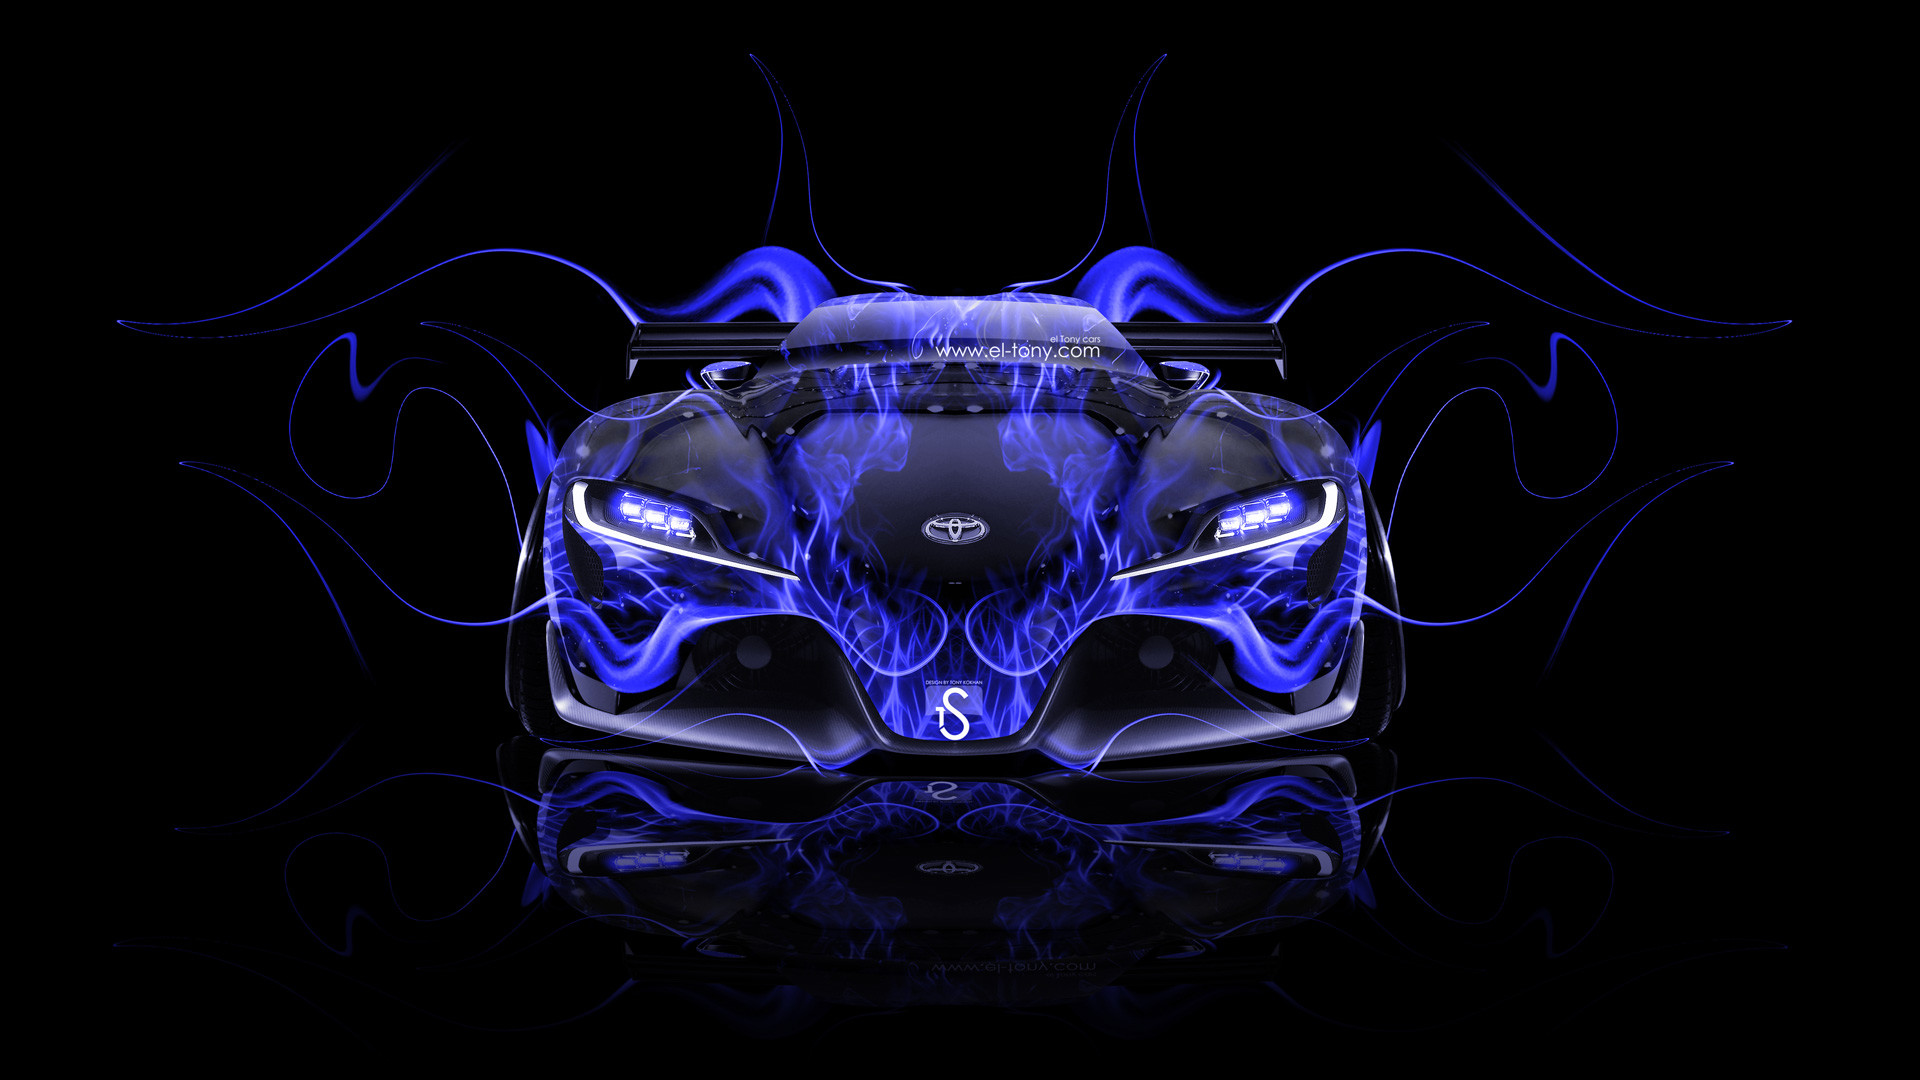 Cool Cars Wallpaper 66 Images